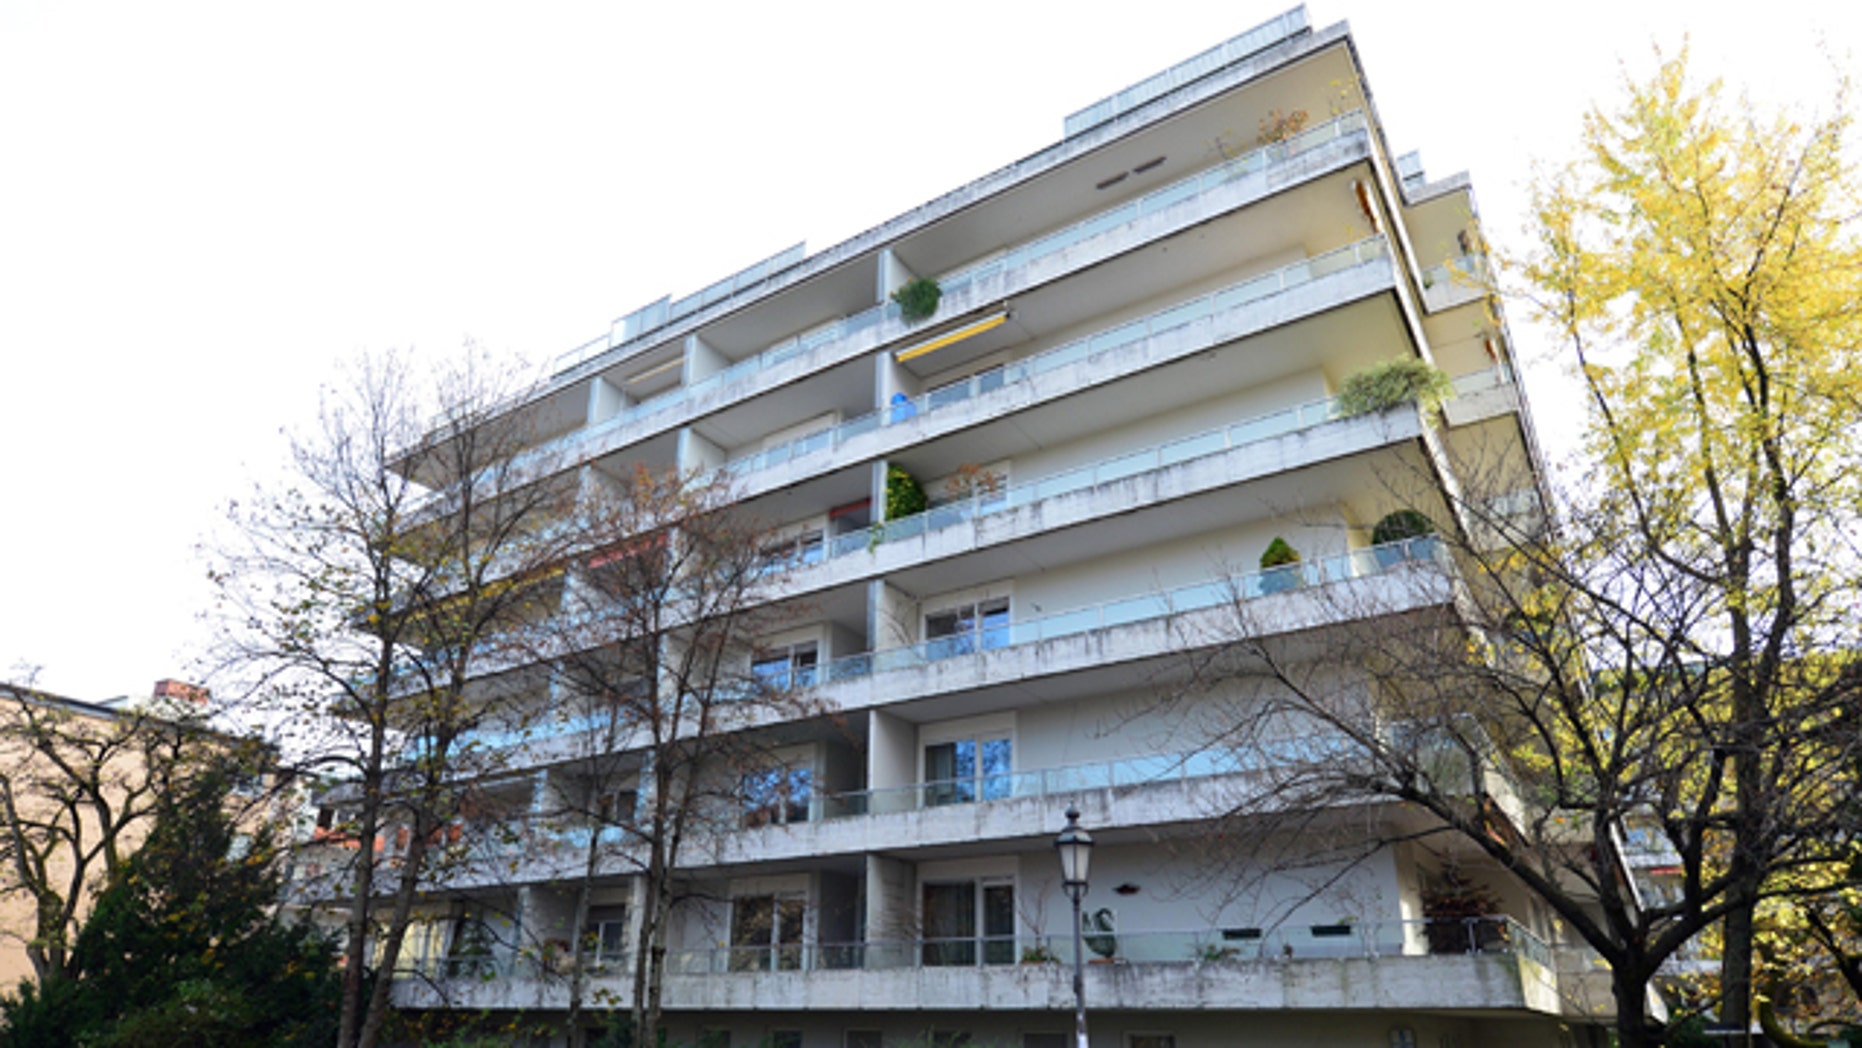 November 4, 2013: FILE -This photo shows the apartment building in Munich, Germany, where more than 1,400 artworks were found in the apartment of collector Cornelius Gurlitt. Gurlitt, a reclusive German collector whose long-secret hoard of well over 1,000 artworks triggered an international uproar over the fate of art looted by the Nazis, died Tuesday. He was 81. (AP Photo/dpa, Marc Mueller, File)